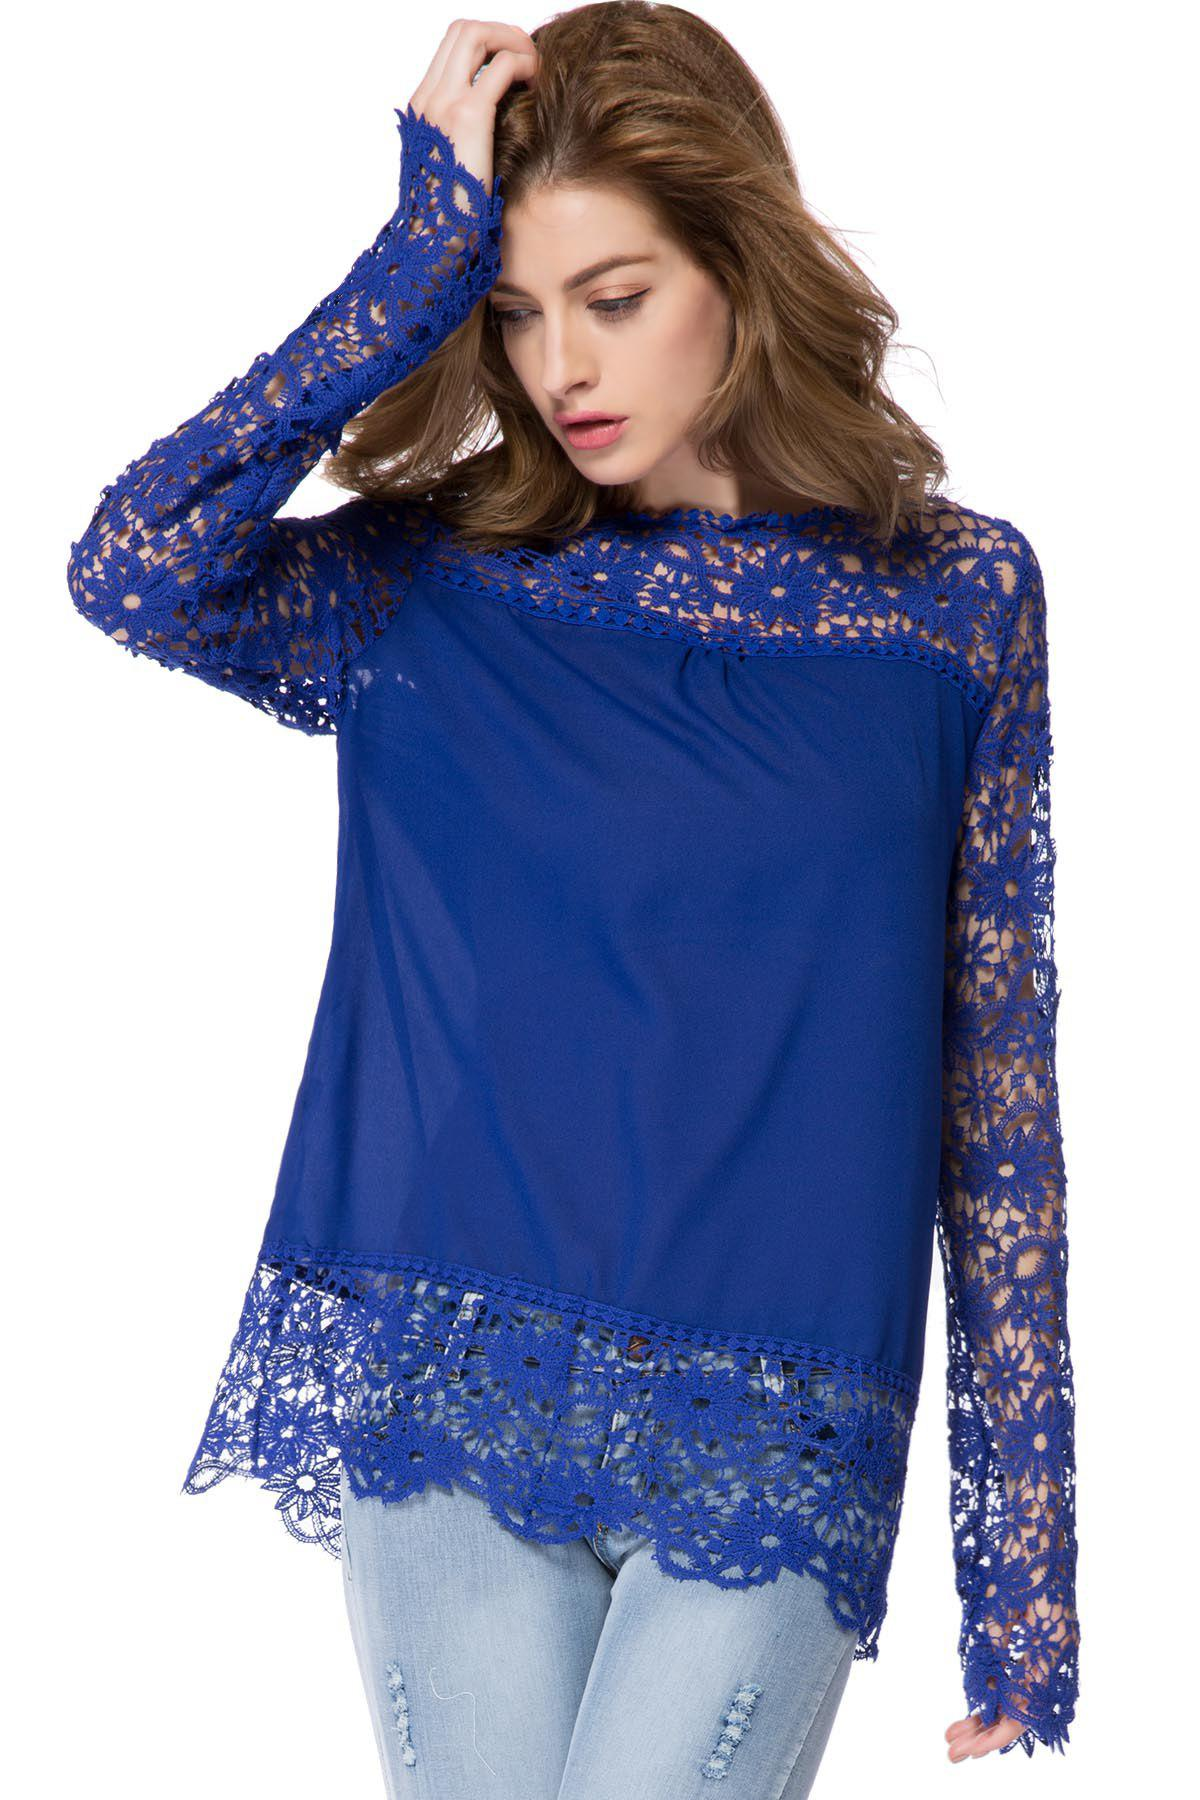 Stylish Round Neck Long Sleeve Spliced Hollow Out Women's Blouse